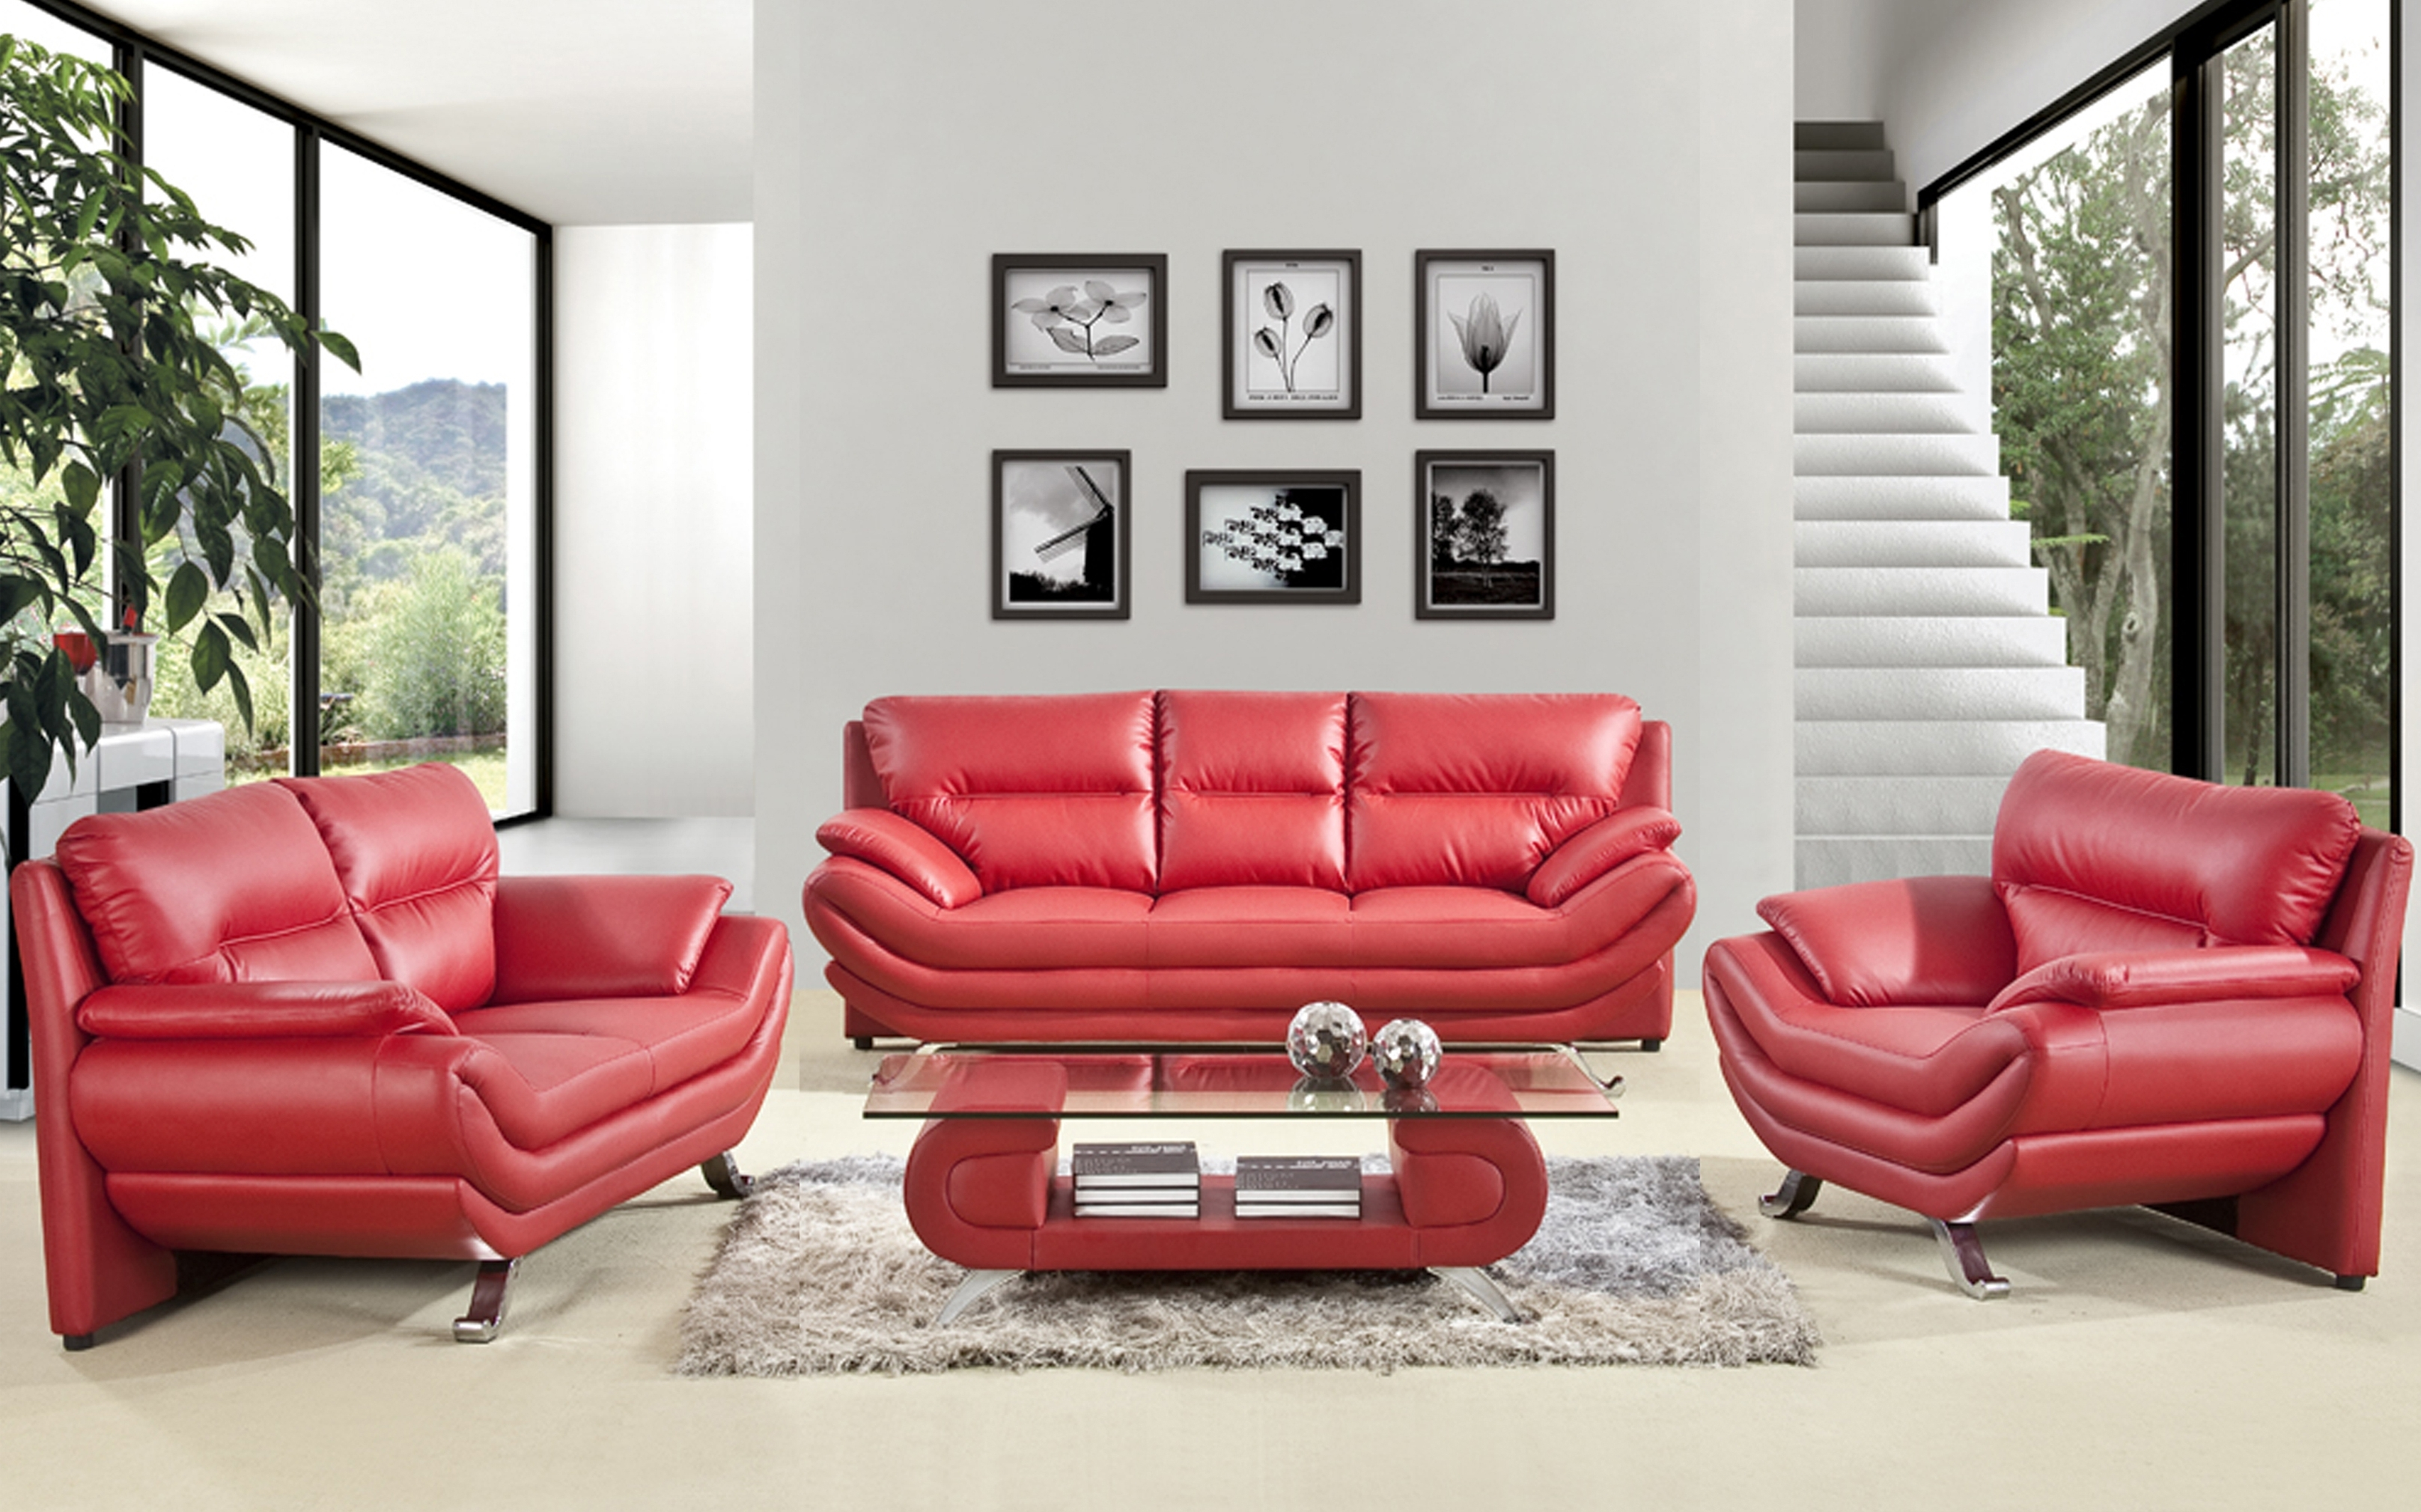 Preferred Magnificen Home Interior Decorating Living Room Design Ideas With Regarding Red Leather Couches For Living Room (View 15 of 20)